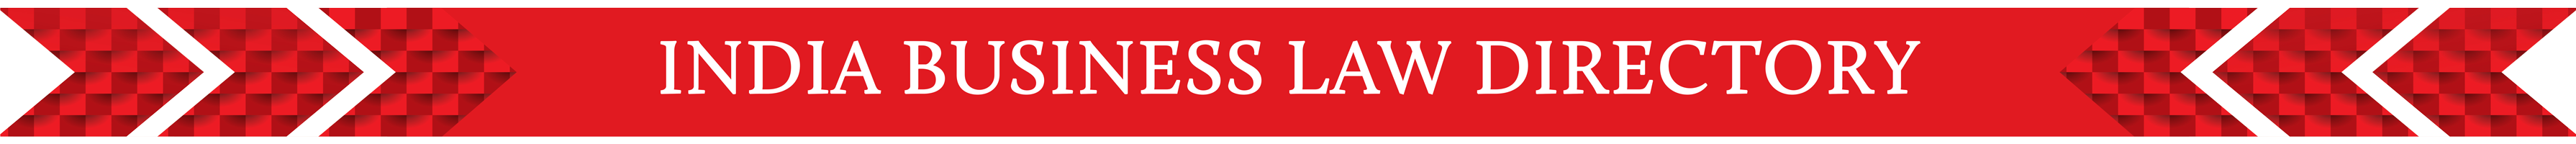 India Business Law Directory